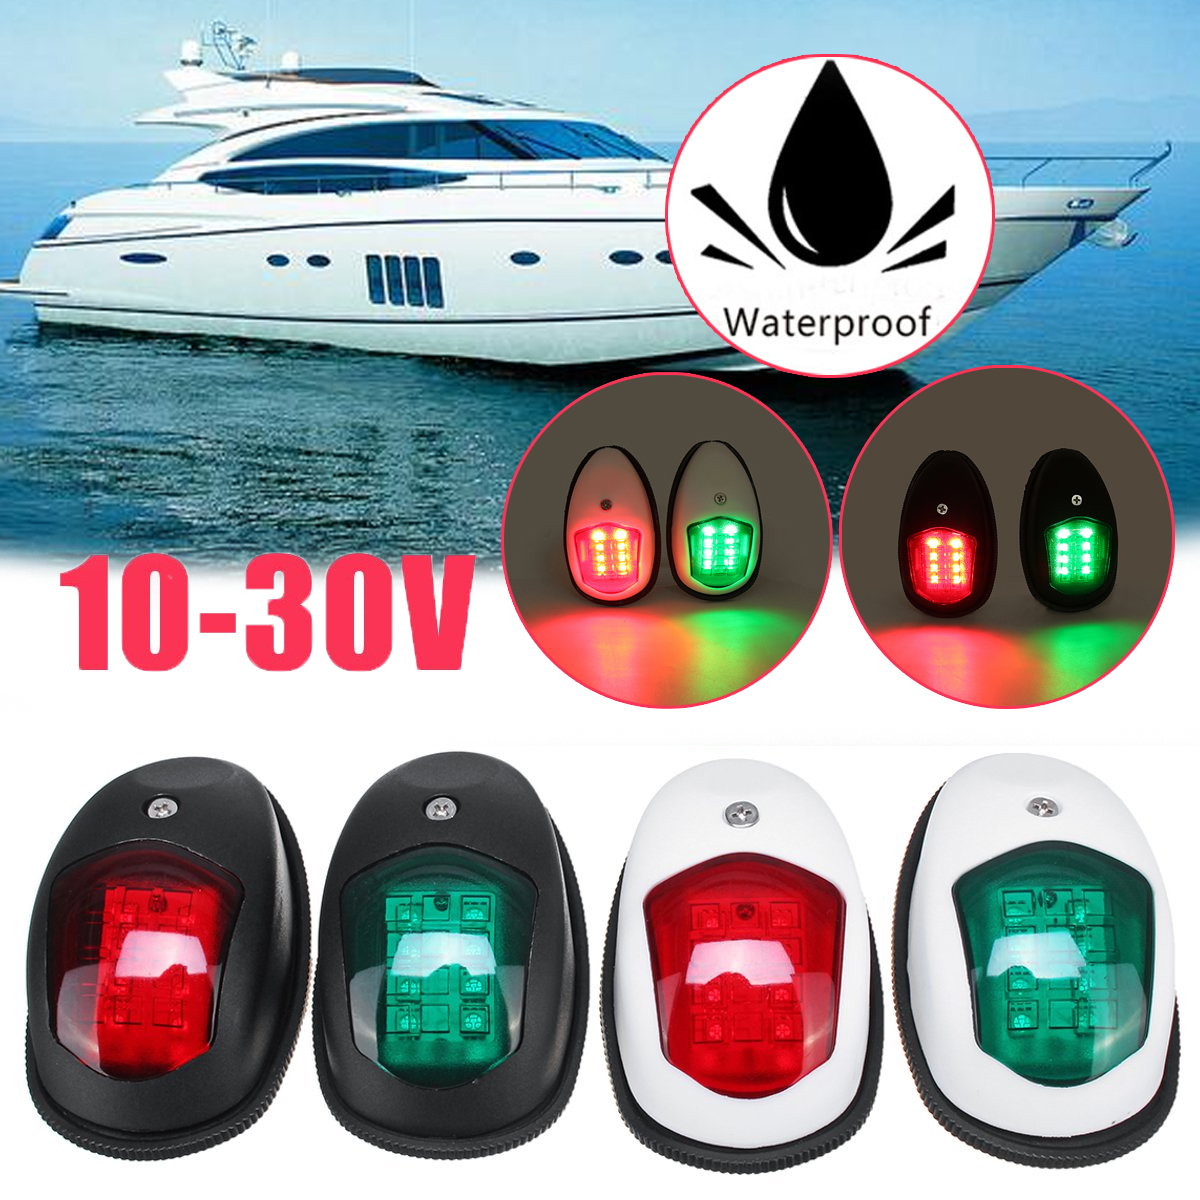 2Pcs Universal LED Side Light Signal Lamp Side Marker Light Navigation Lamp For Marine Boat Yacht Truck Trailer Van